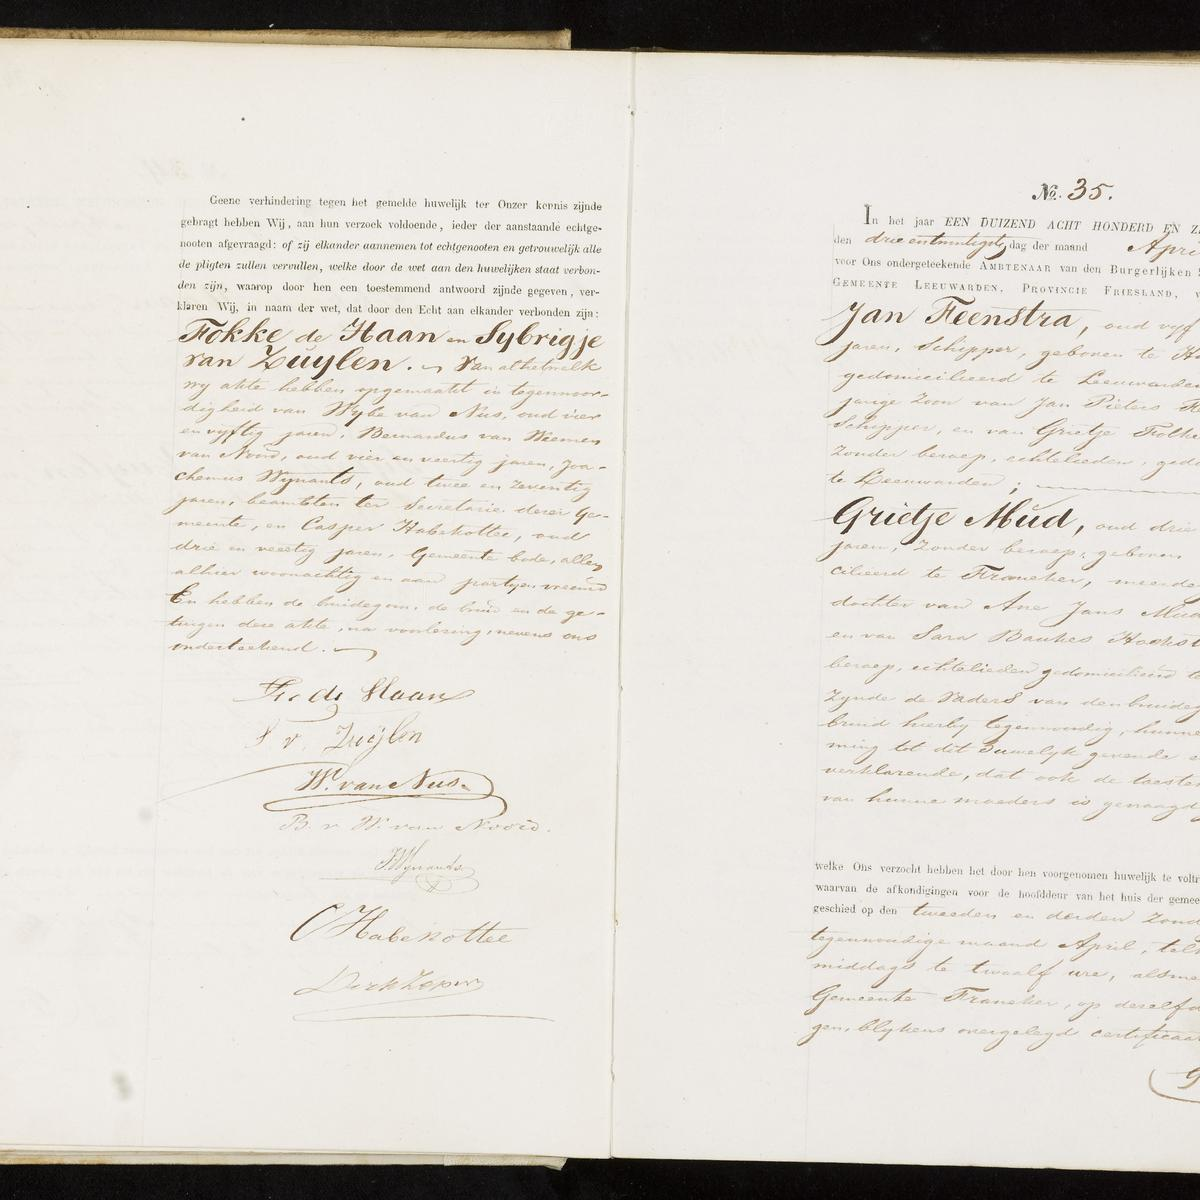 Civil registry of marriages, Leeuwarden, 1870, records 34-35